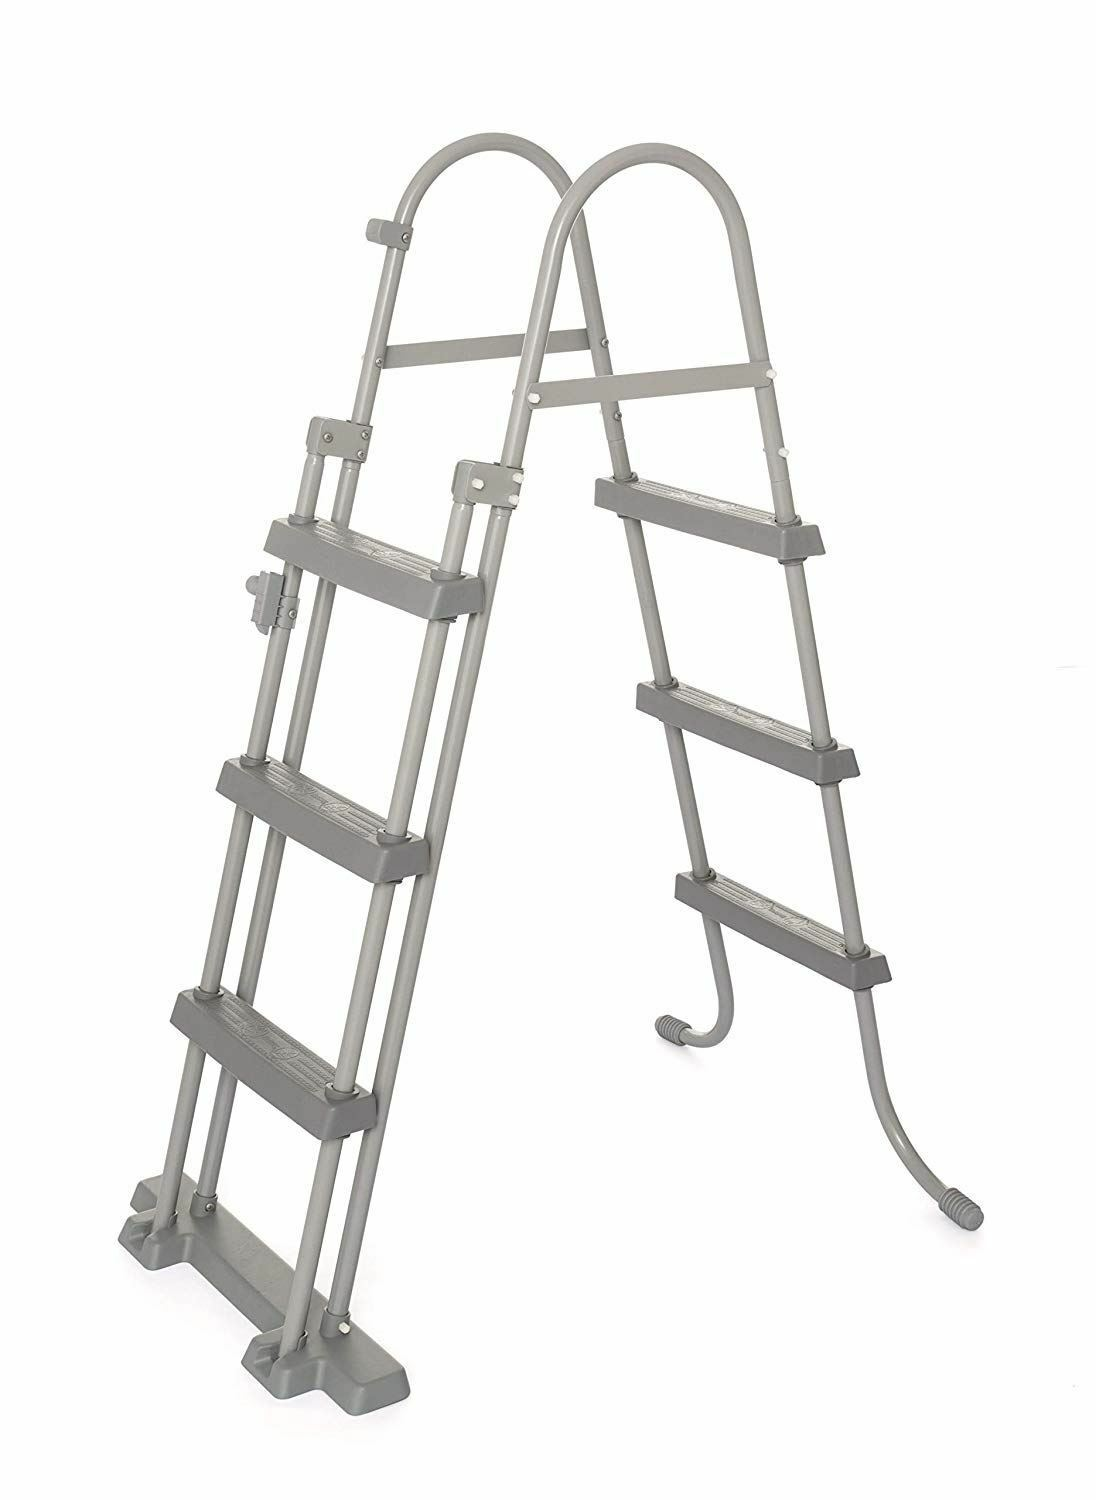 Bestway Flowclear Above Ground Pool Ladder, 42 Inch